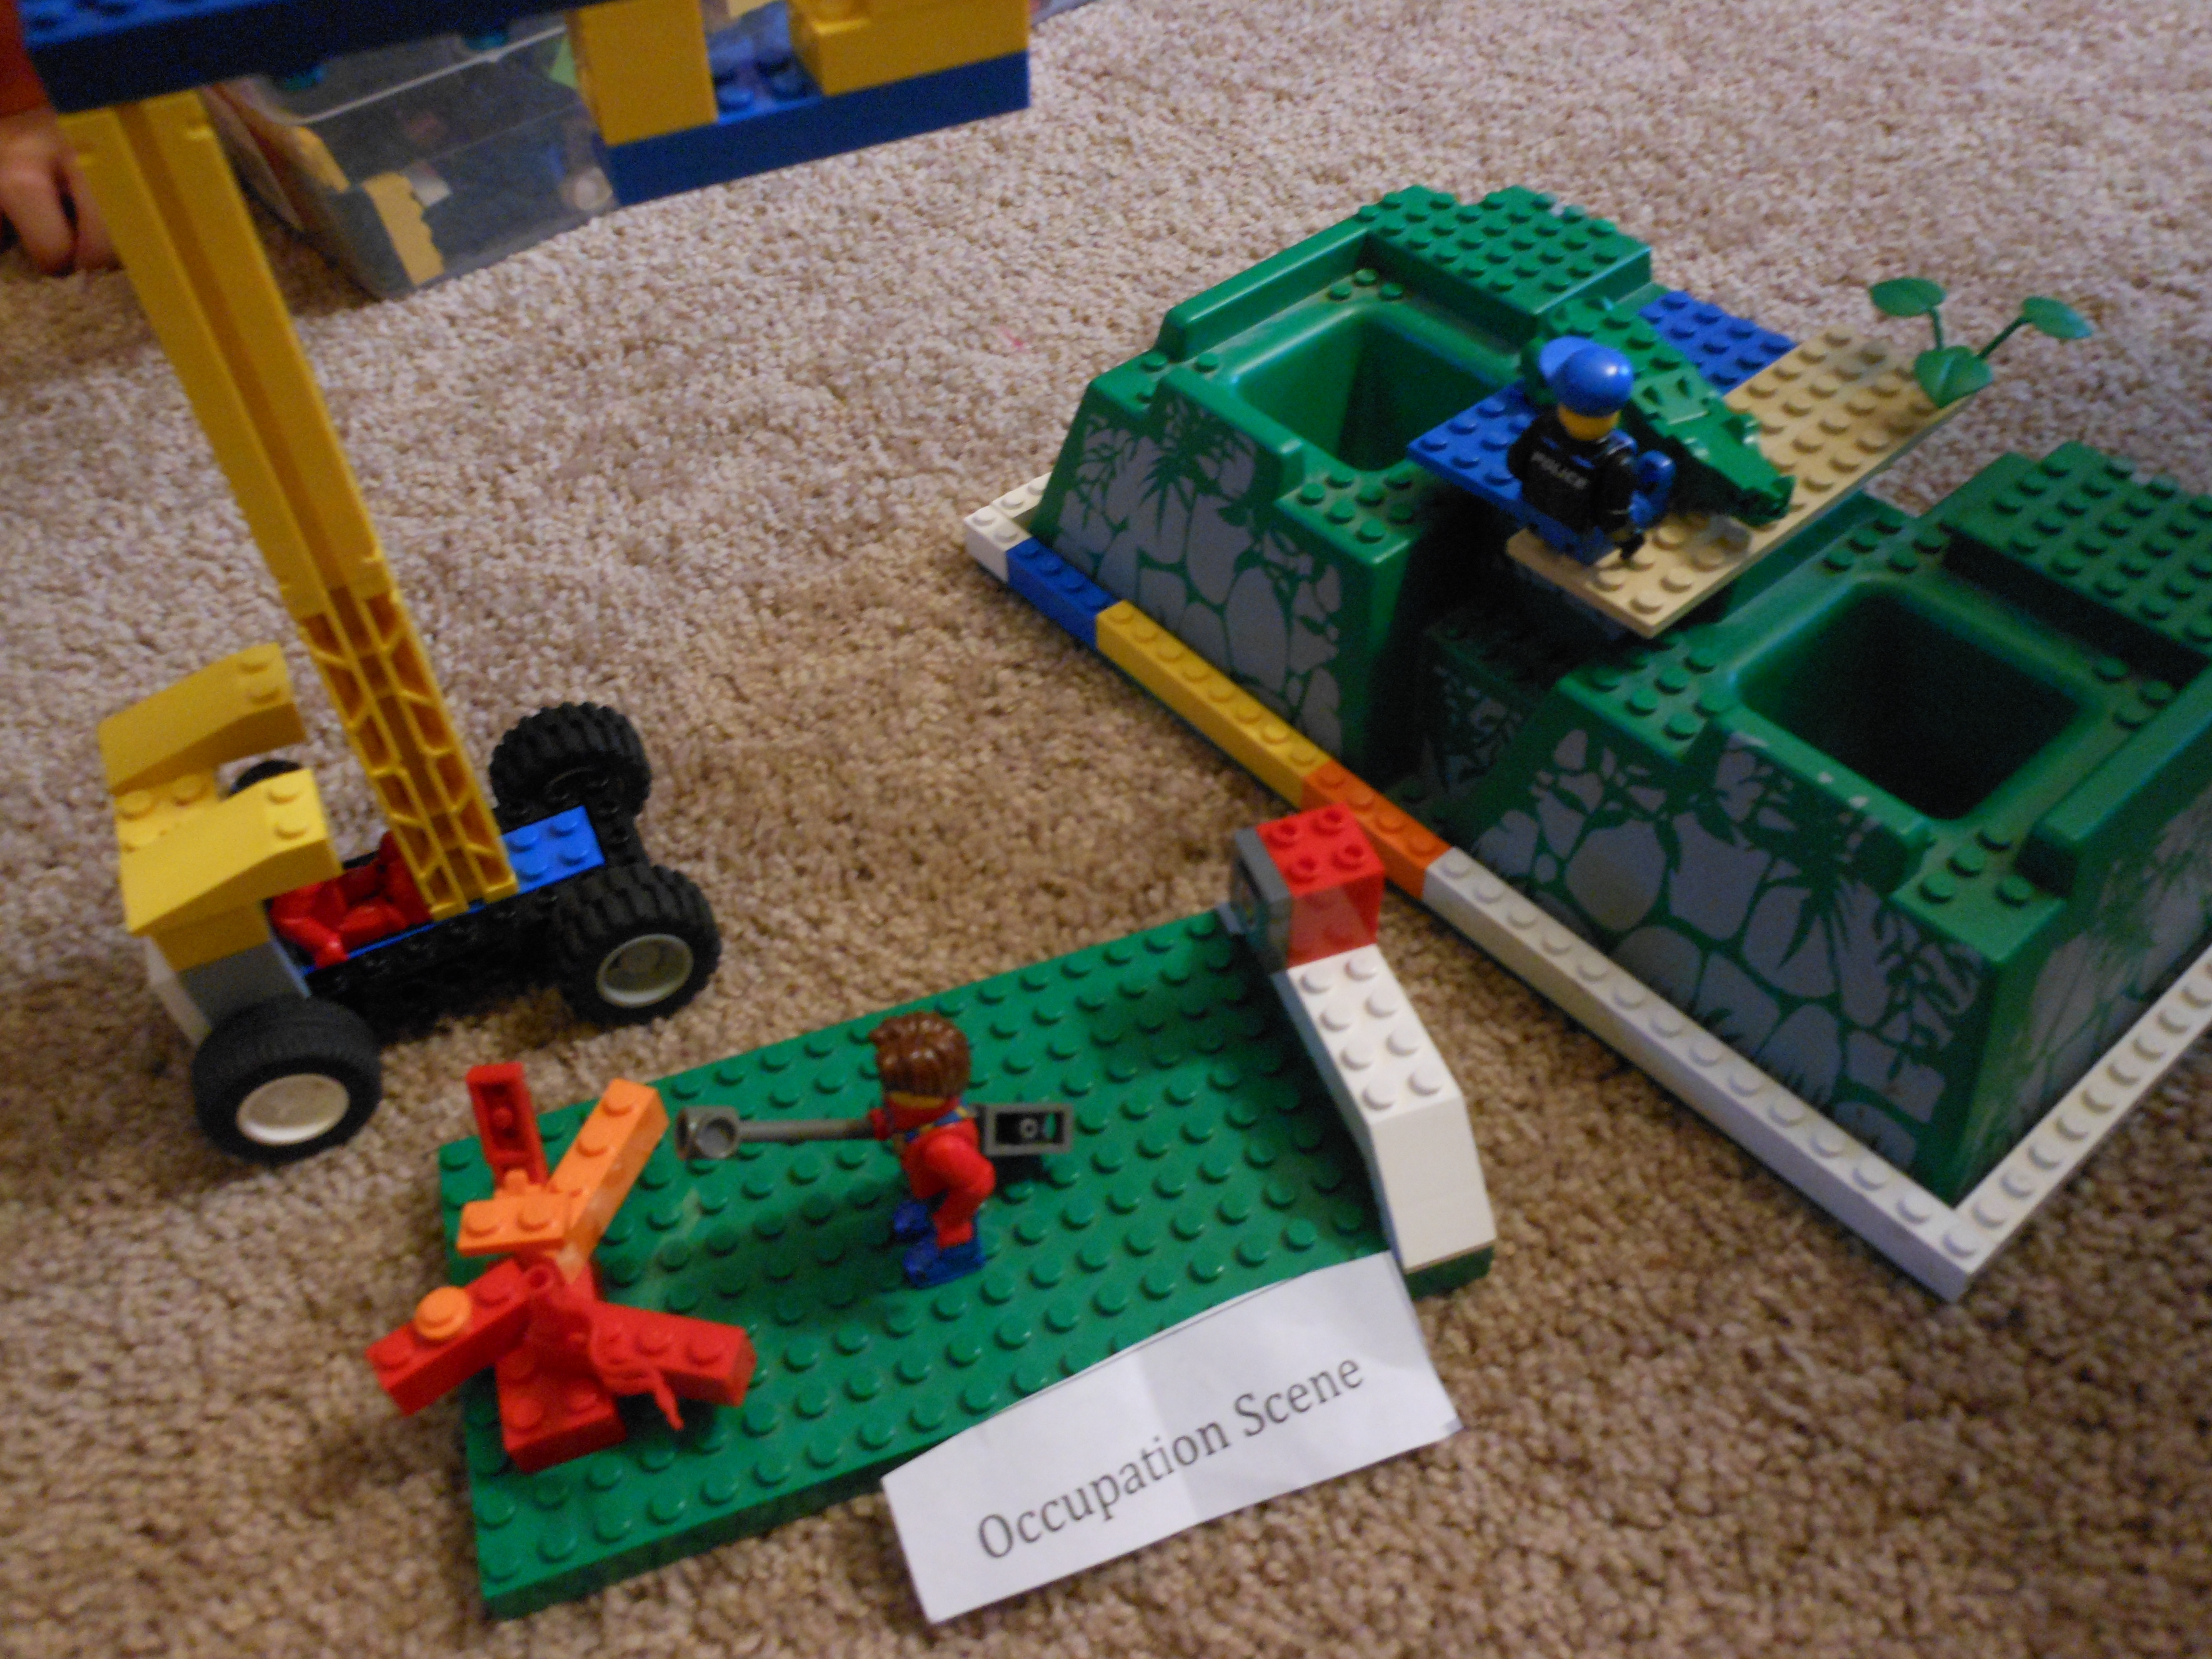 A homemade game for the family lego challenge Home create games